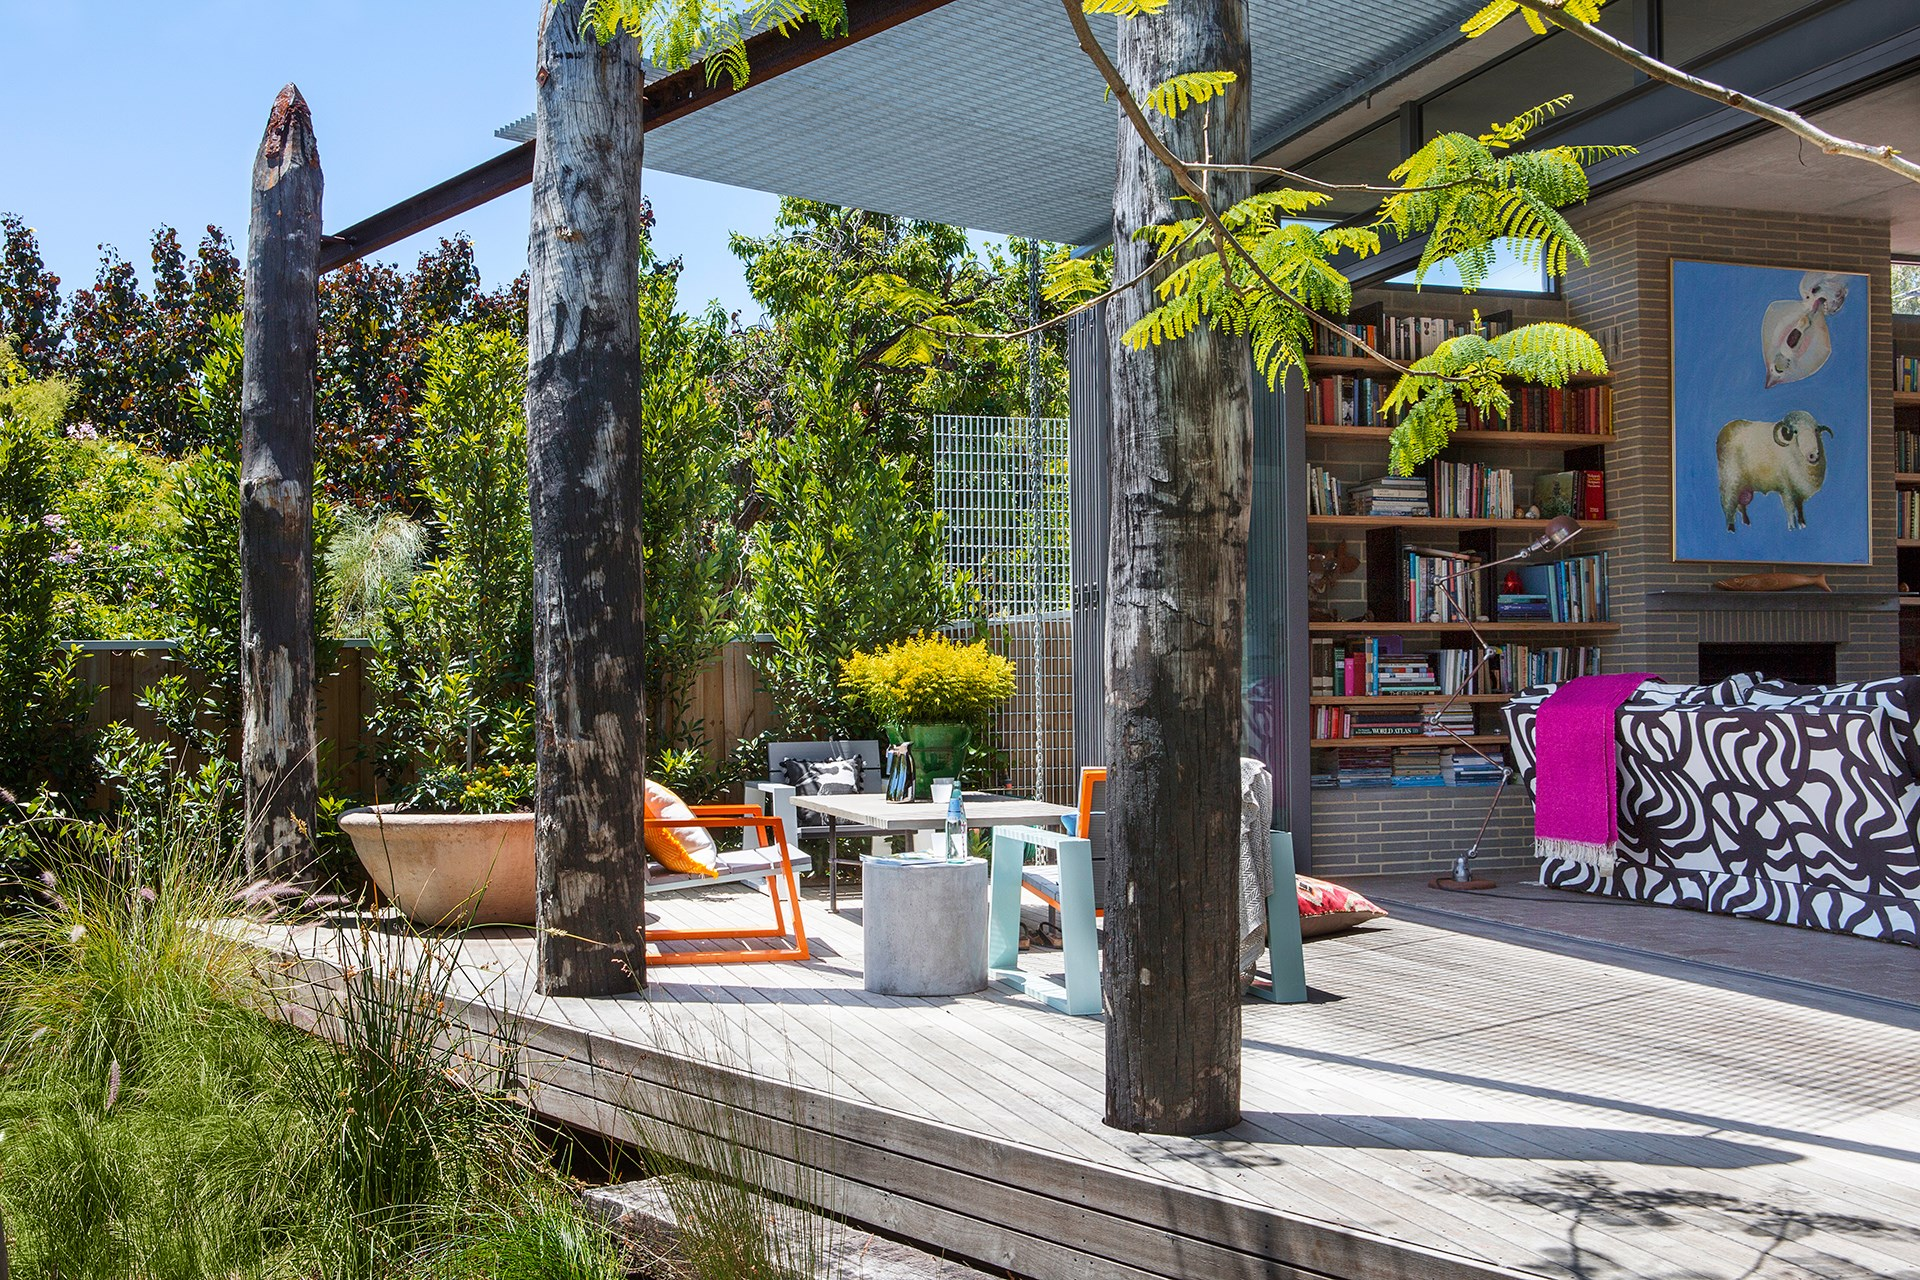 This sunny home in Perth is owned by an architect who sourced pylons from an old jetty to use as spectacular posts for the back deck. *Photo:* Angelita Bonetti.